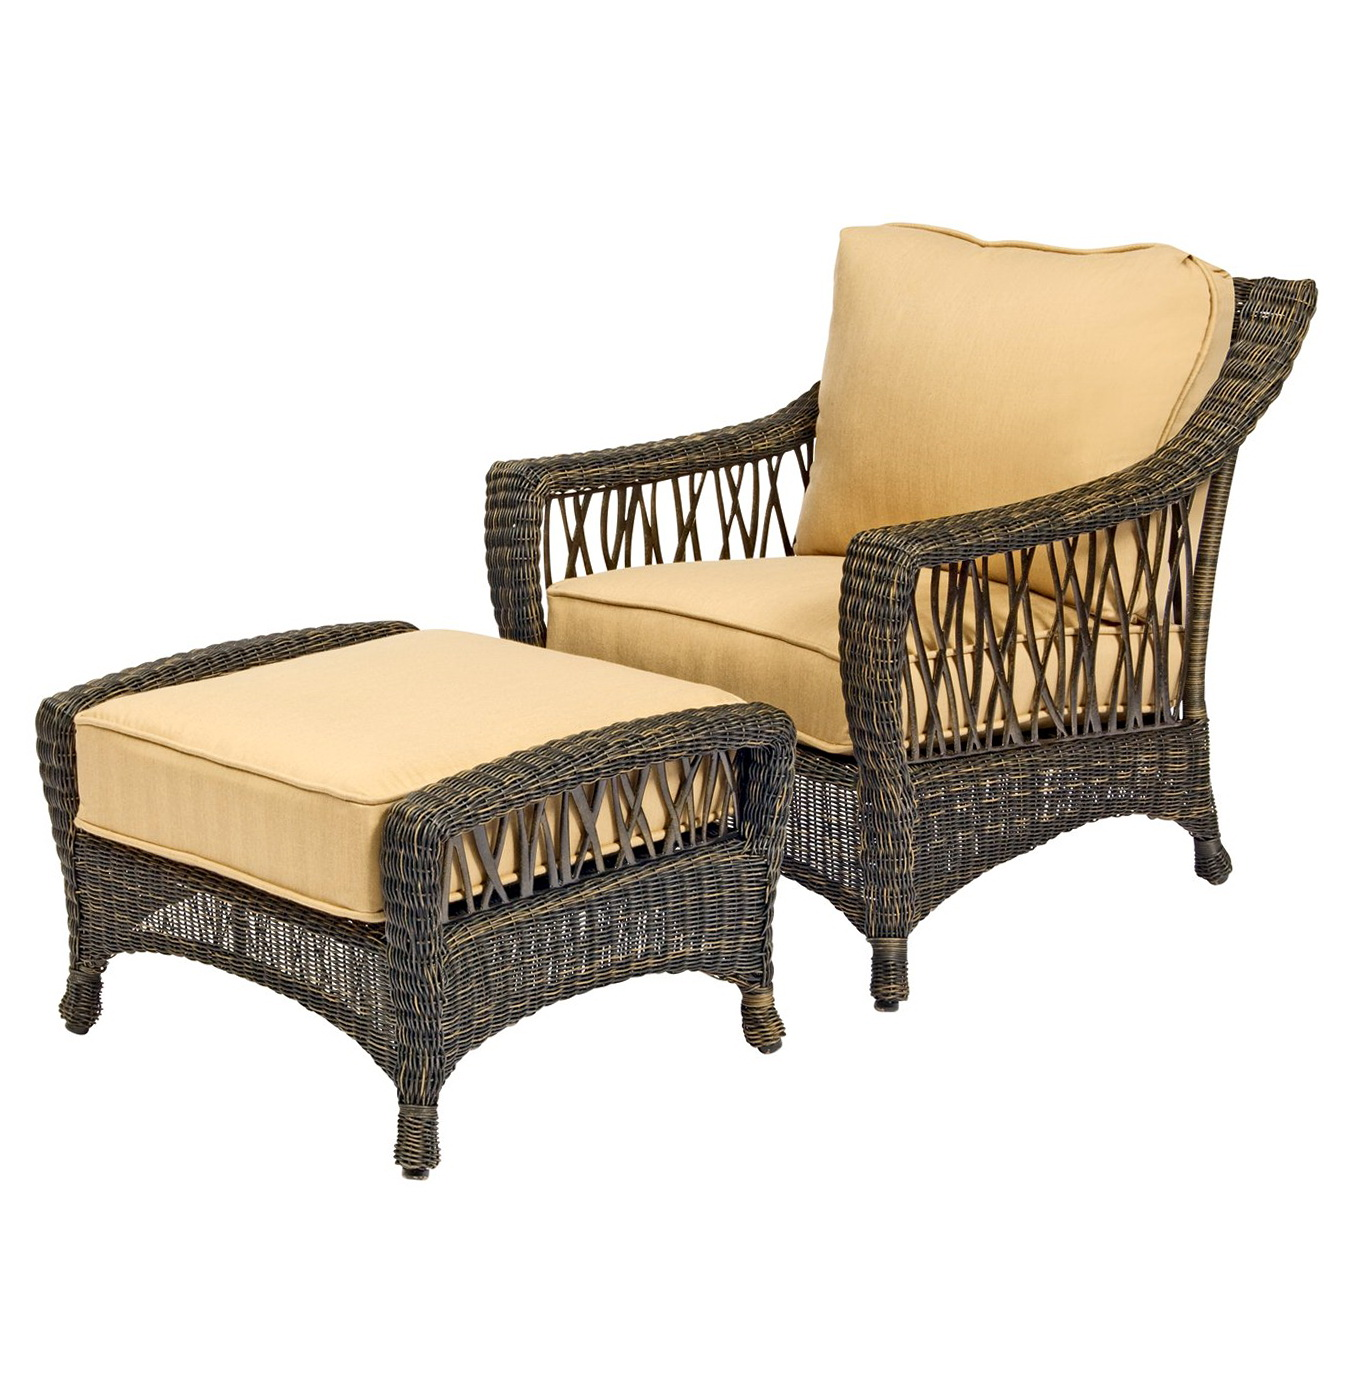 Chair And Ottoman Sets For Sale